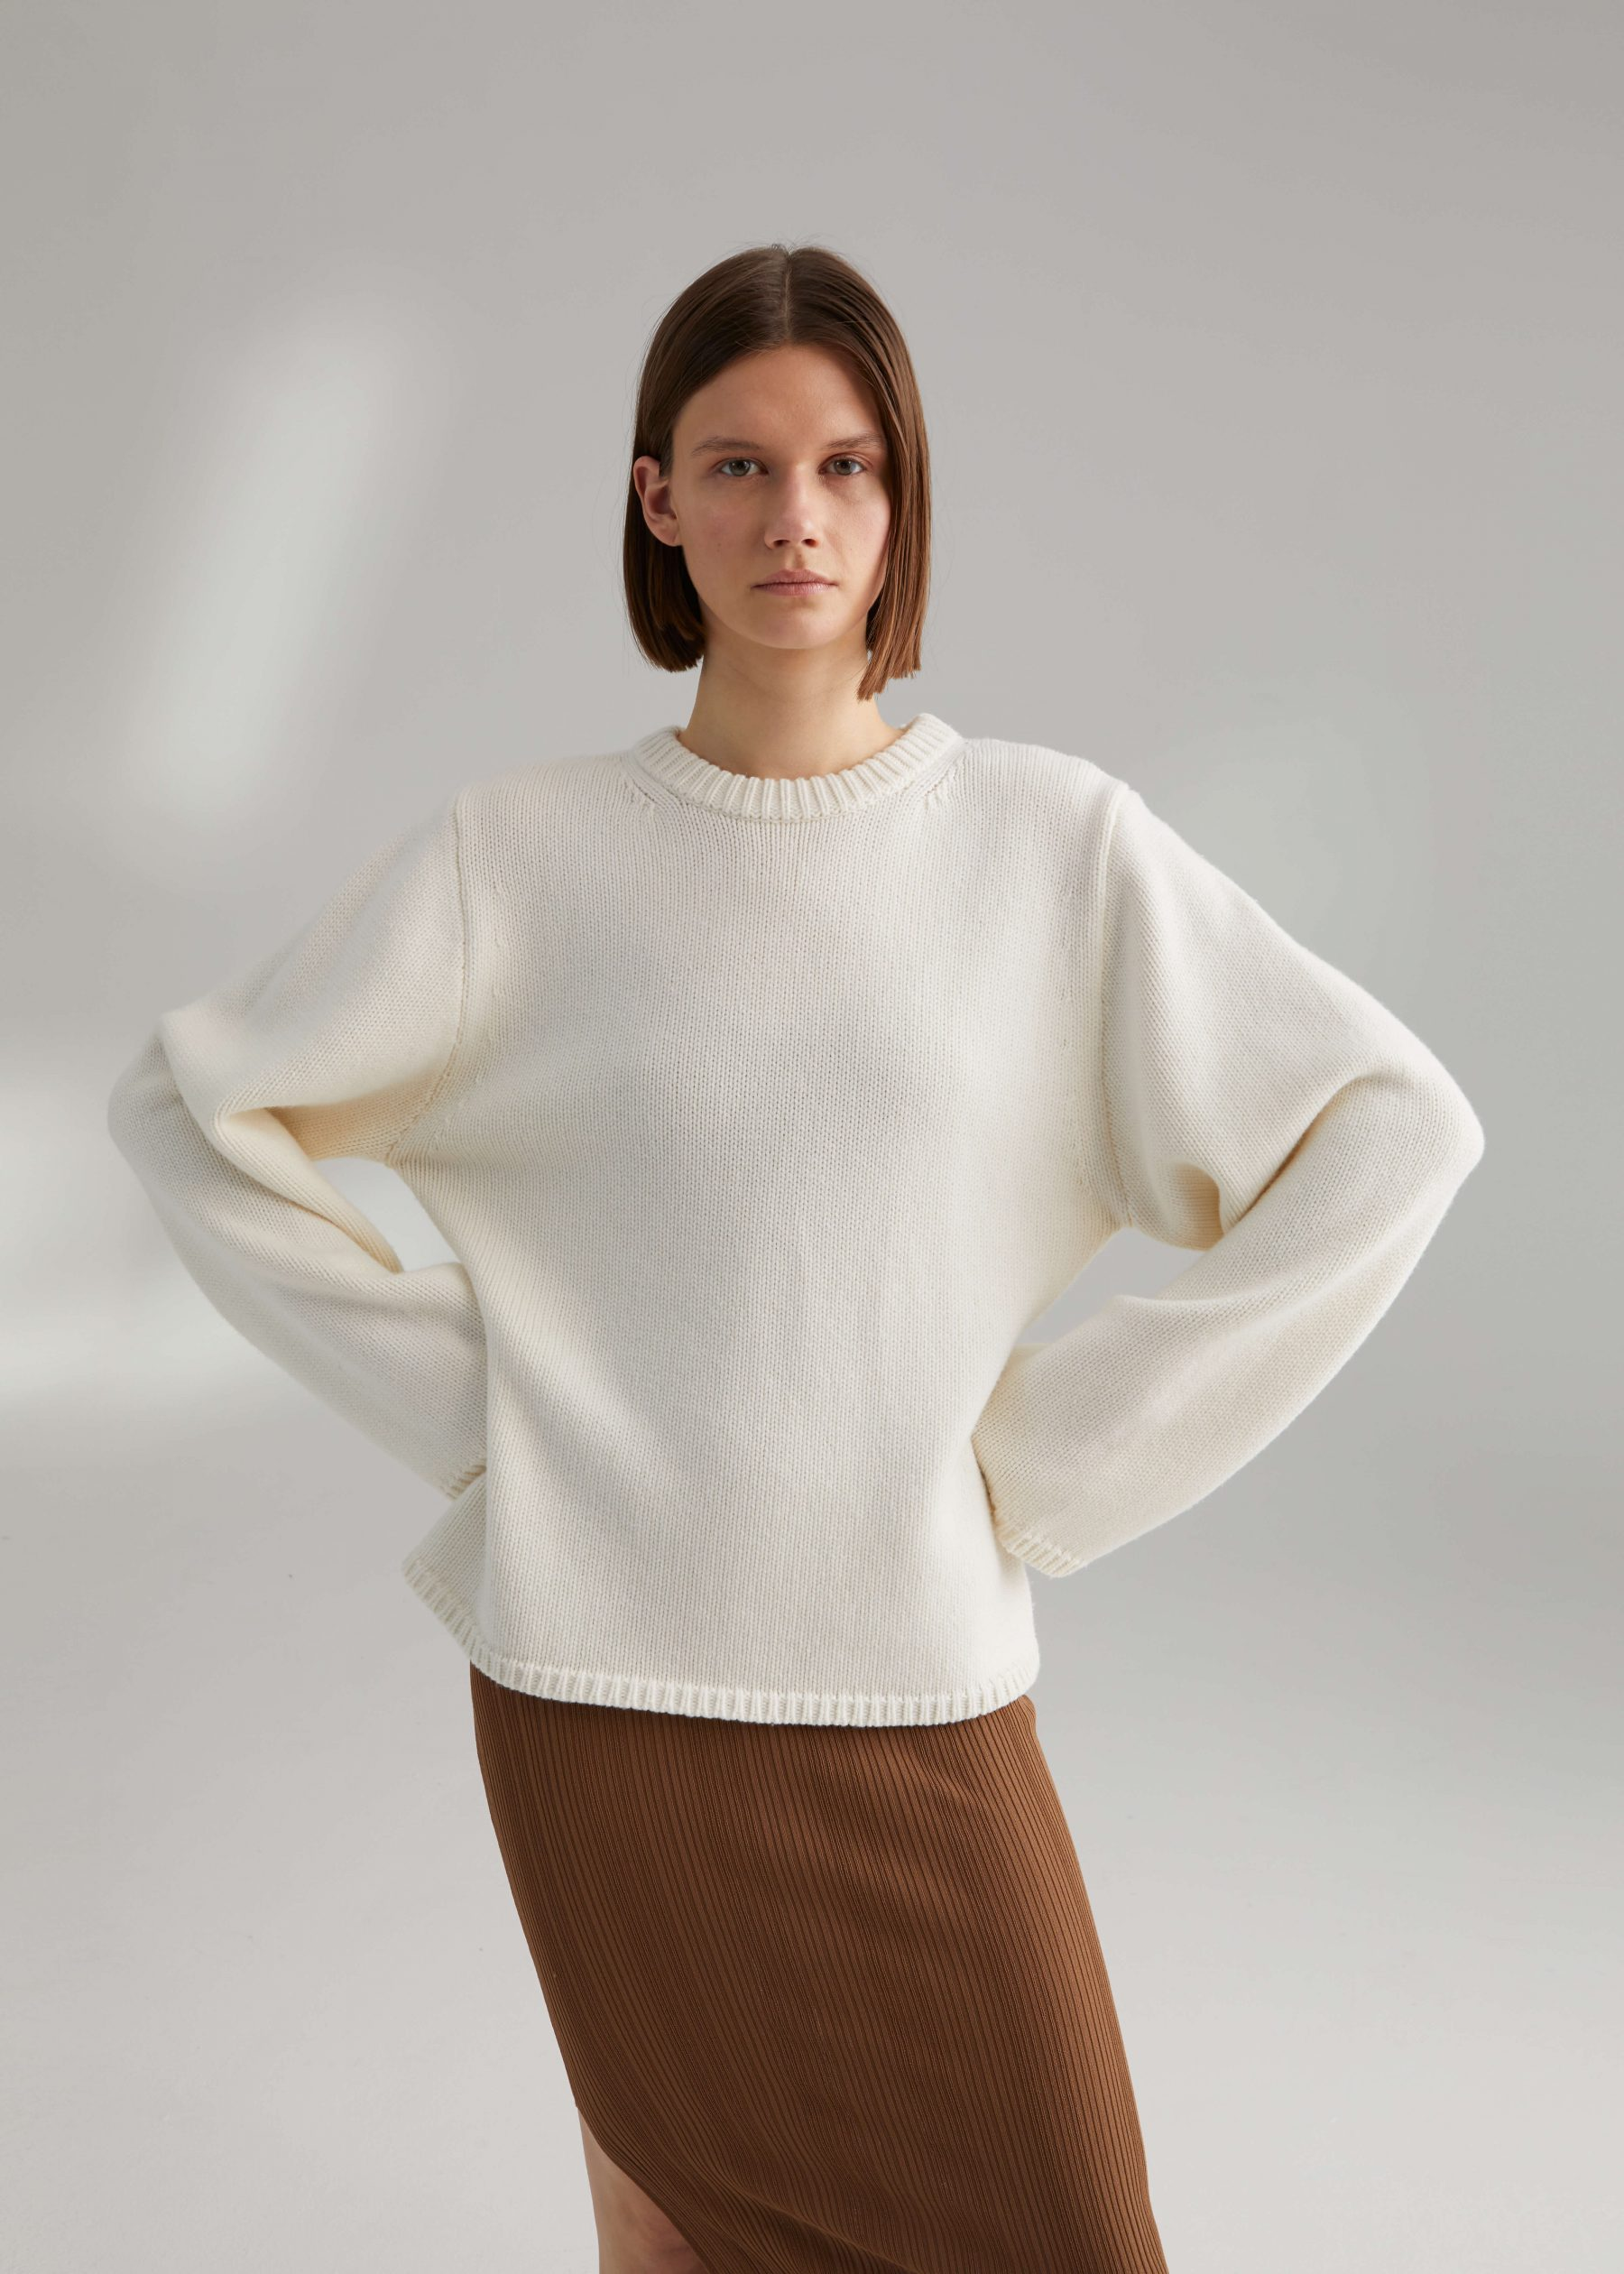 Montese knit creme from Toteme, buy it   here  . Photo: Toteme.